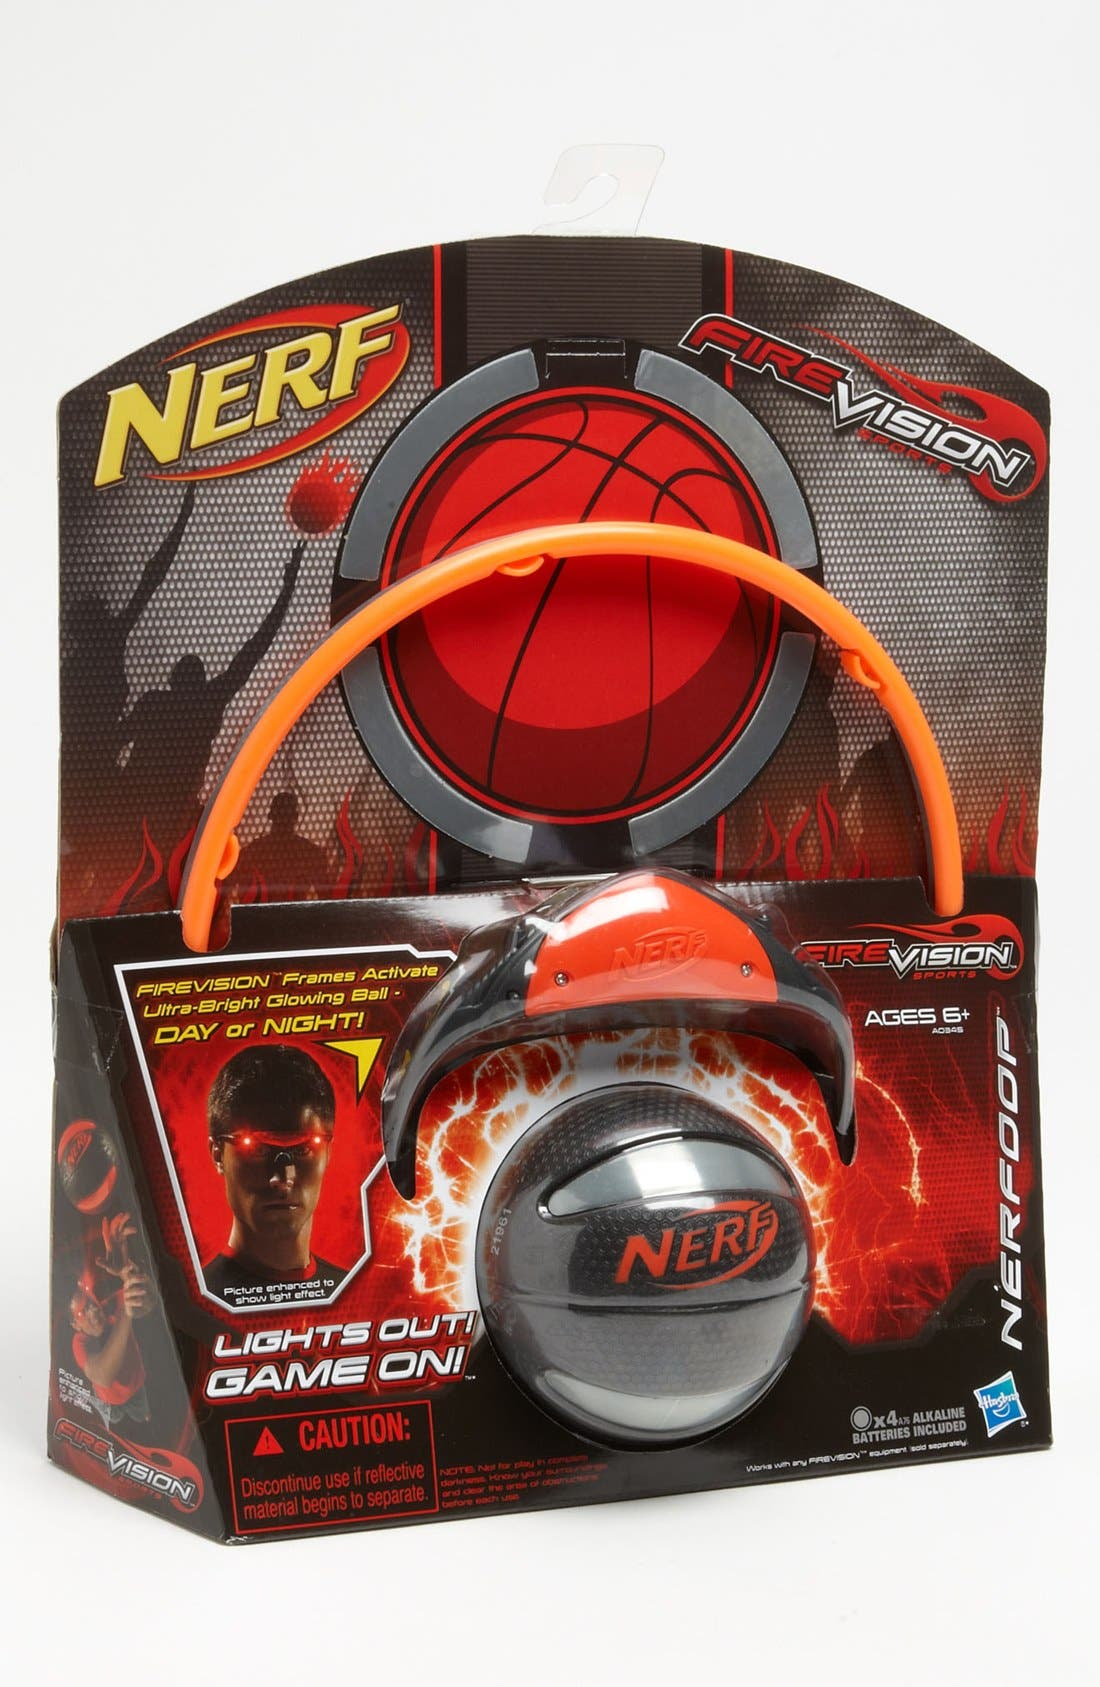 Alternate Image 1 Selected - Play Visions Toys 'FIREVISION™' Glasses, Mini Basketball & Hoop